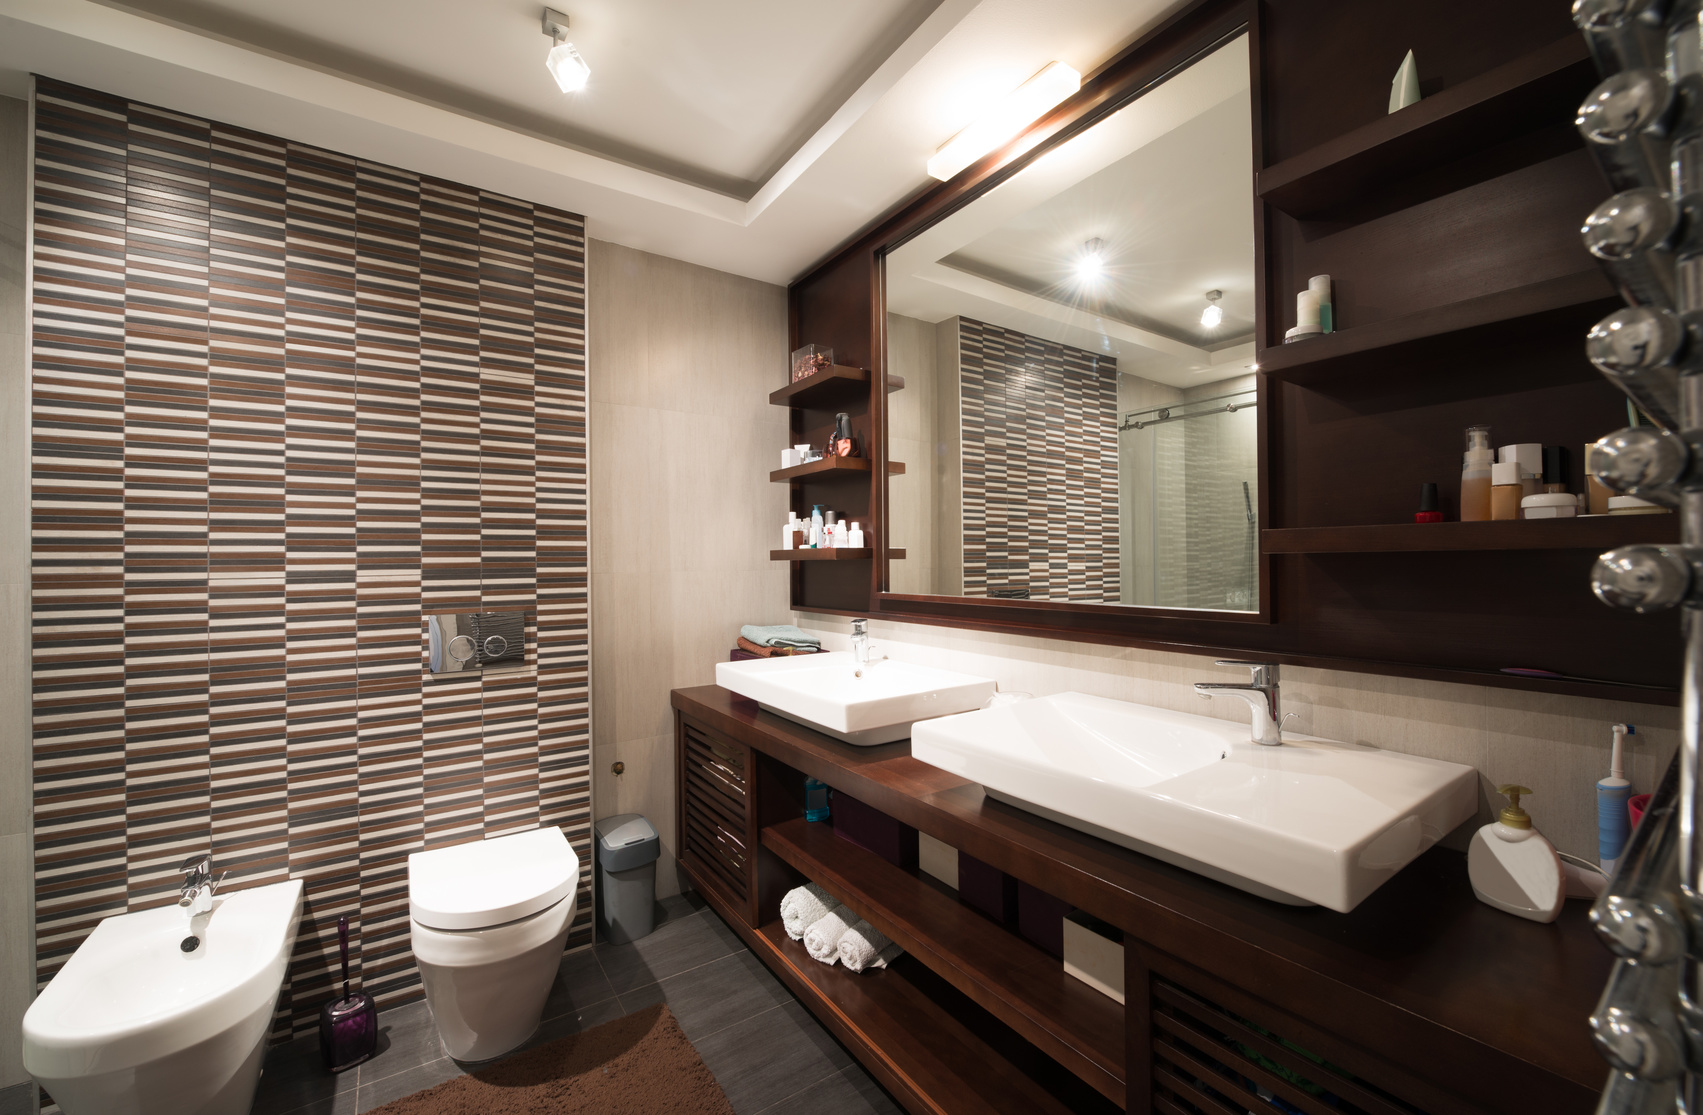 A Stylish Modern Bathroom Is A Great Way To Express Your Own Creativity And  Give Your Home A Fresh Look At The Same Time.